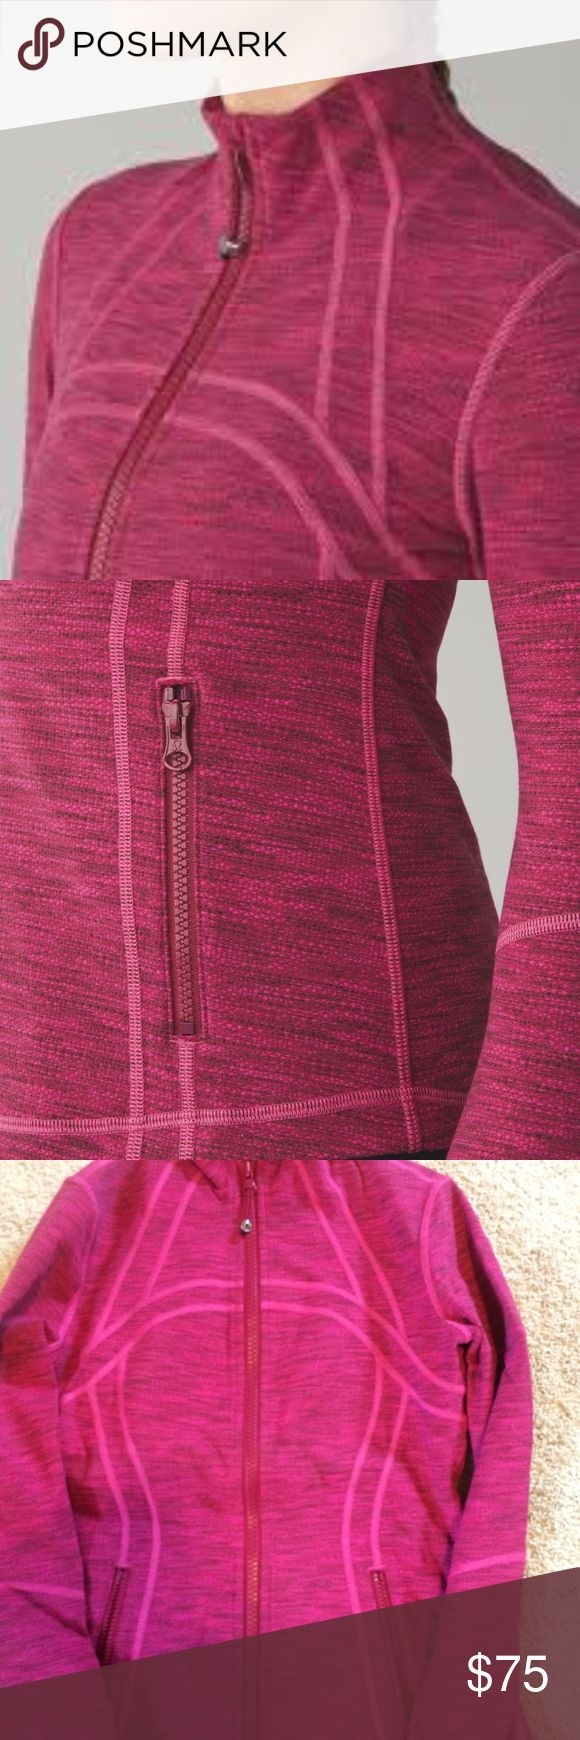 NWO tags Red/Pink Define Jacket ***Rare** GREAT value - price firm lululemon athletica Jackets & Coats